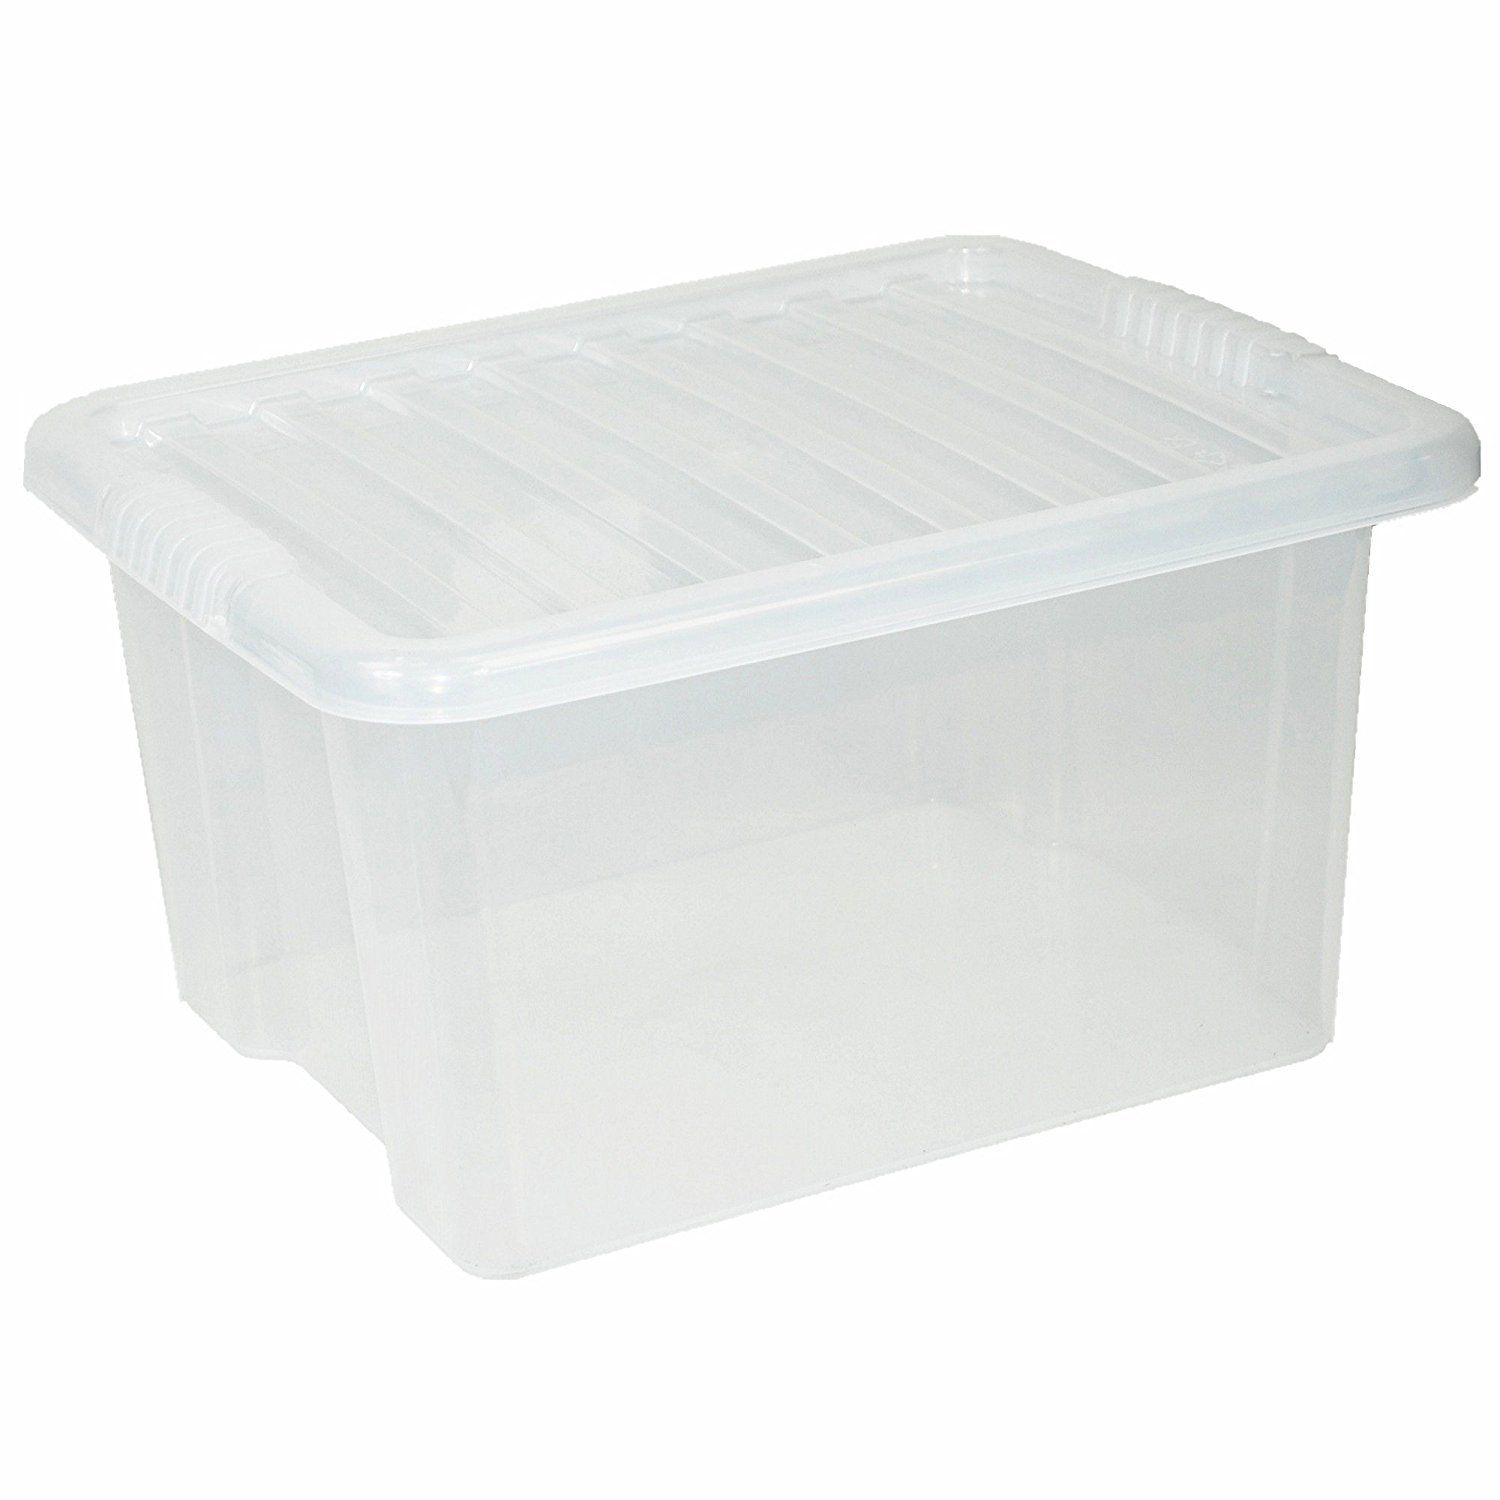 CrazyGadget Large Big Plastic Storage Clear Box with Clear Lid